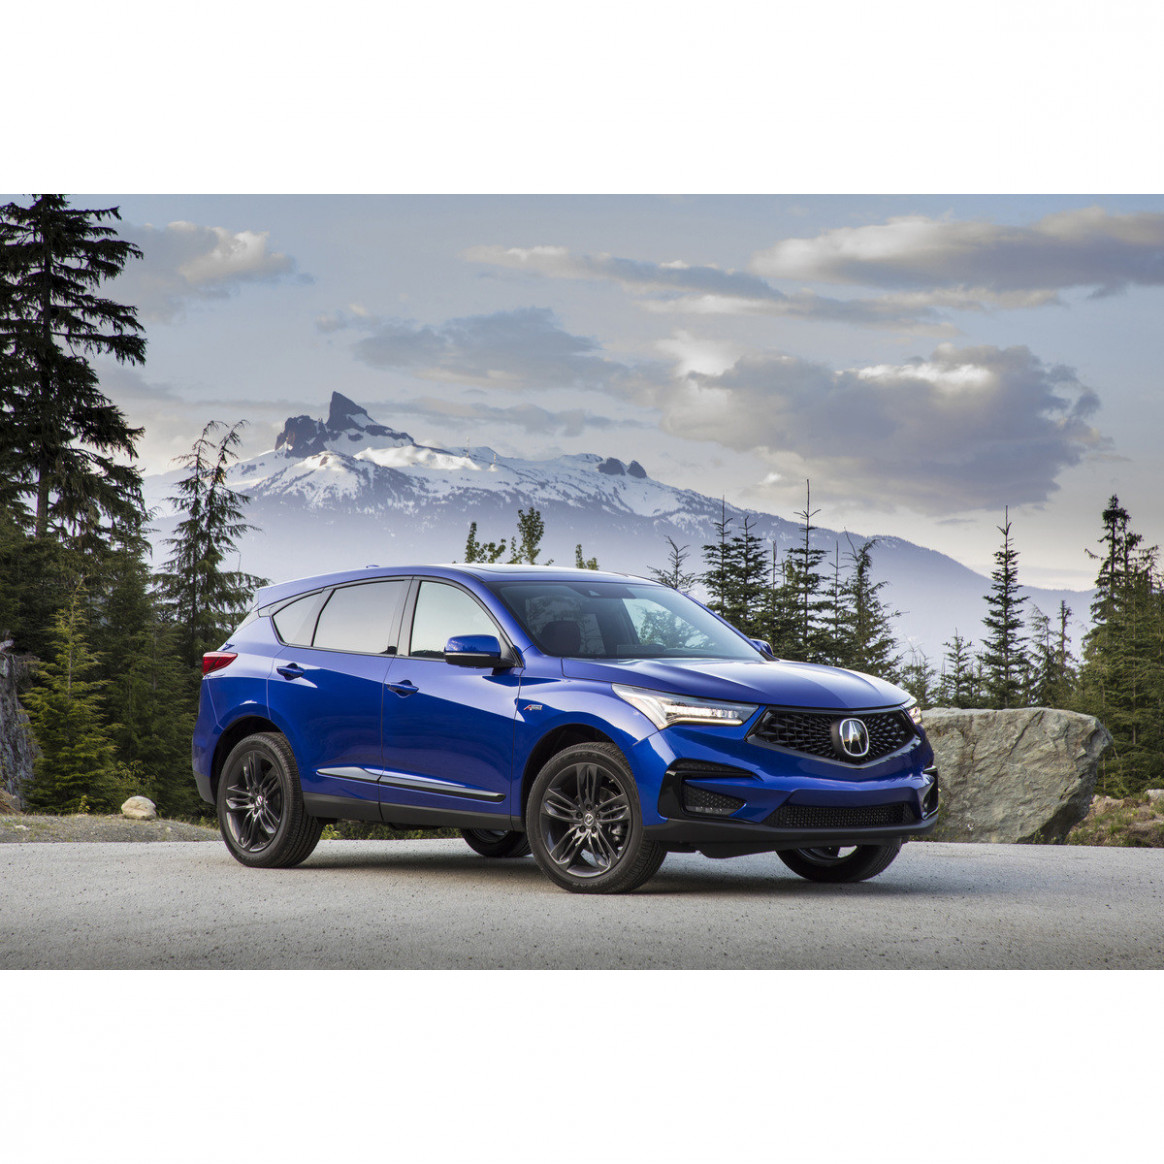 Acura Certified Pre-Owned Vehicle Program Named 11 IntelliChoice ...